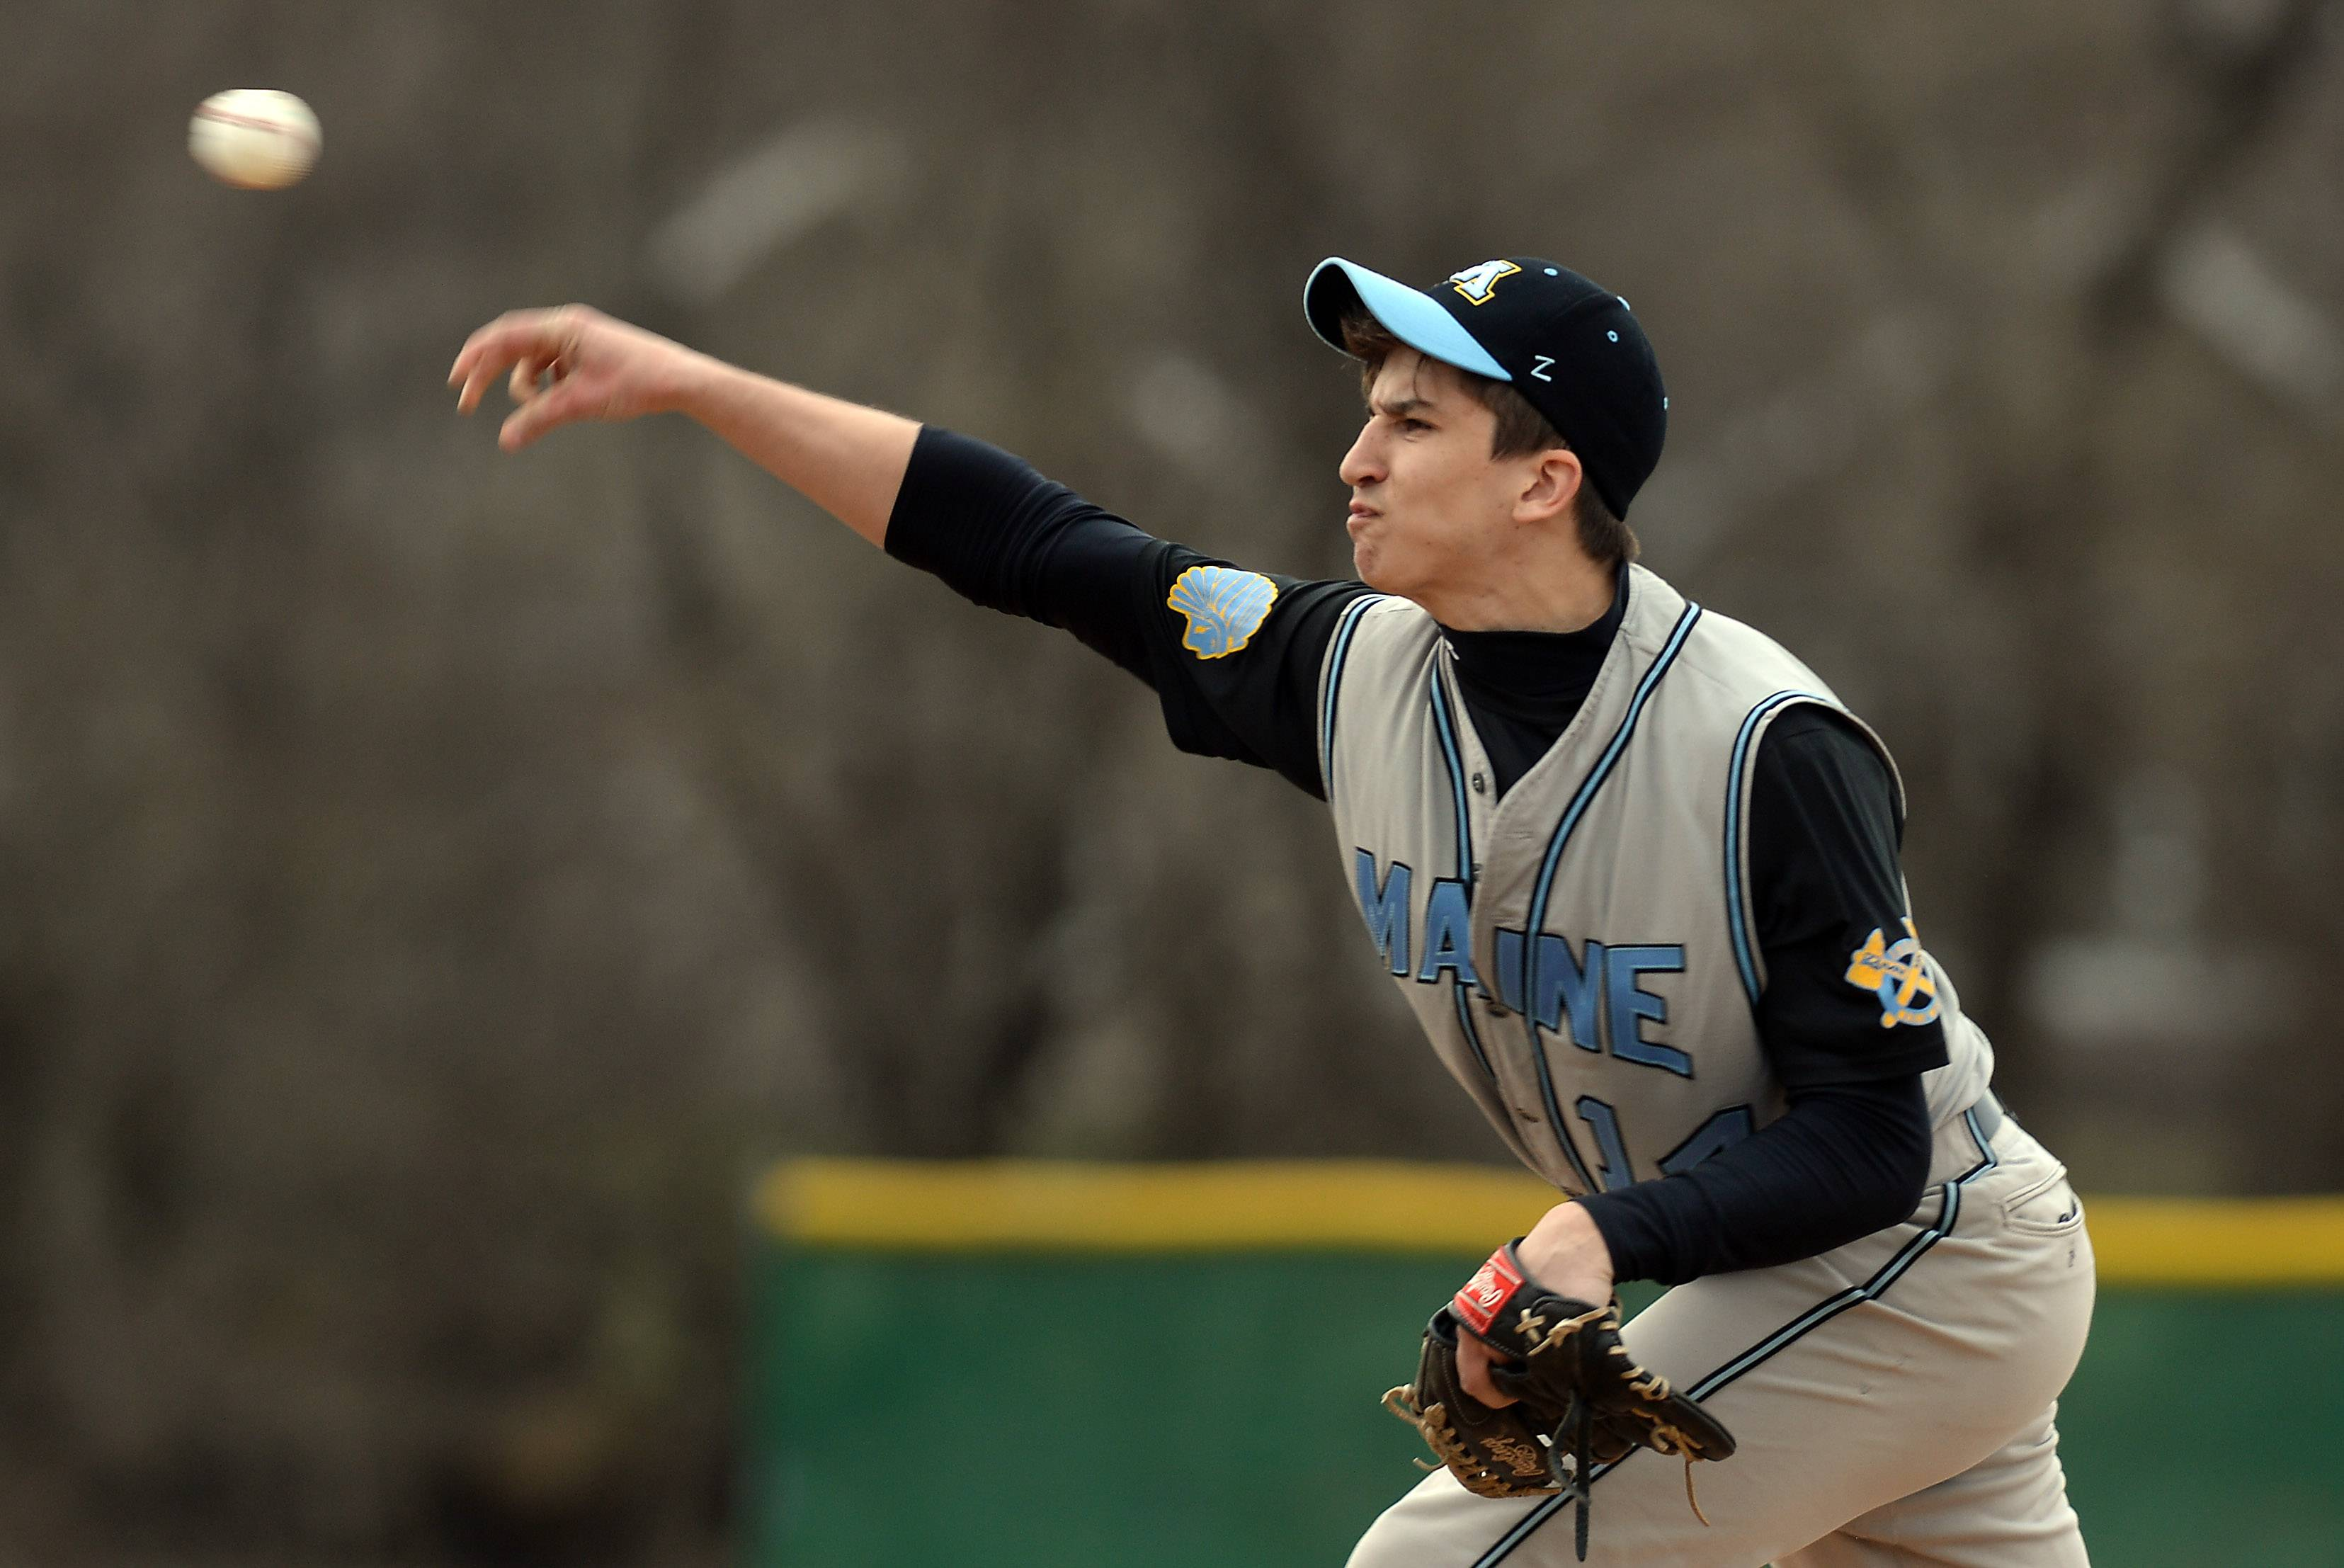 Maine West's Matt Swanson delivers to an Elk Grove hitter on Thursday at Elk Grove.